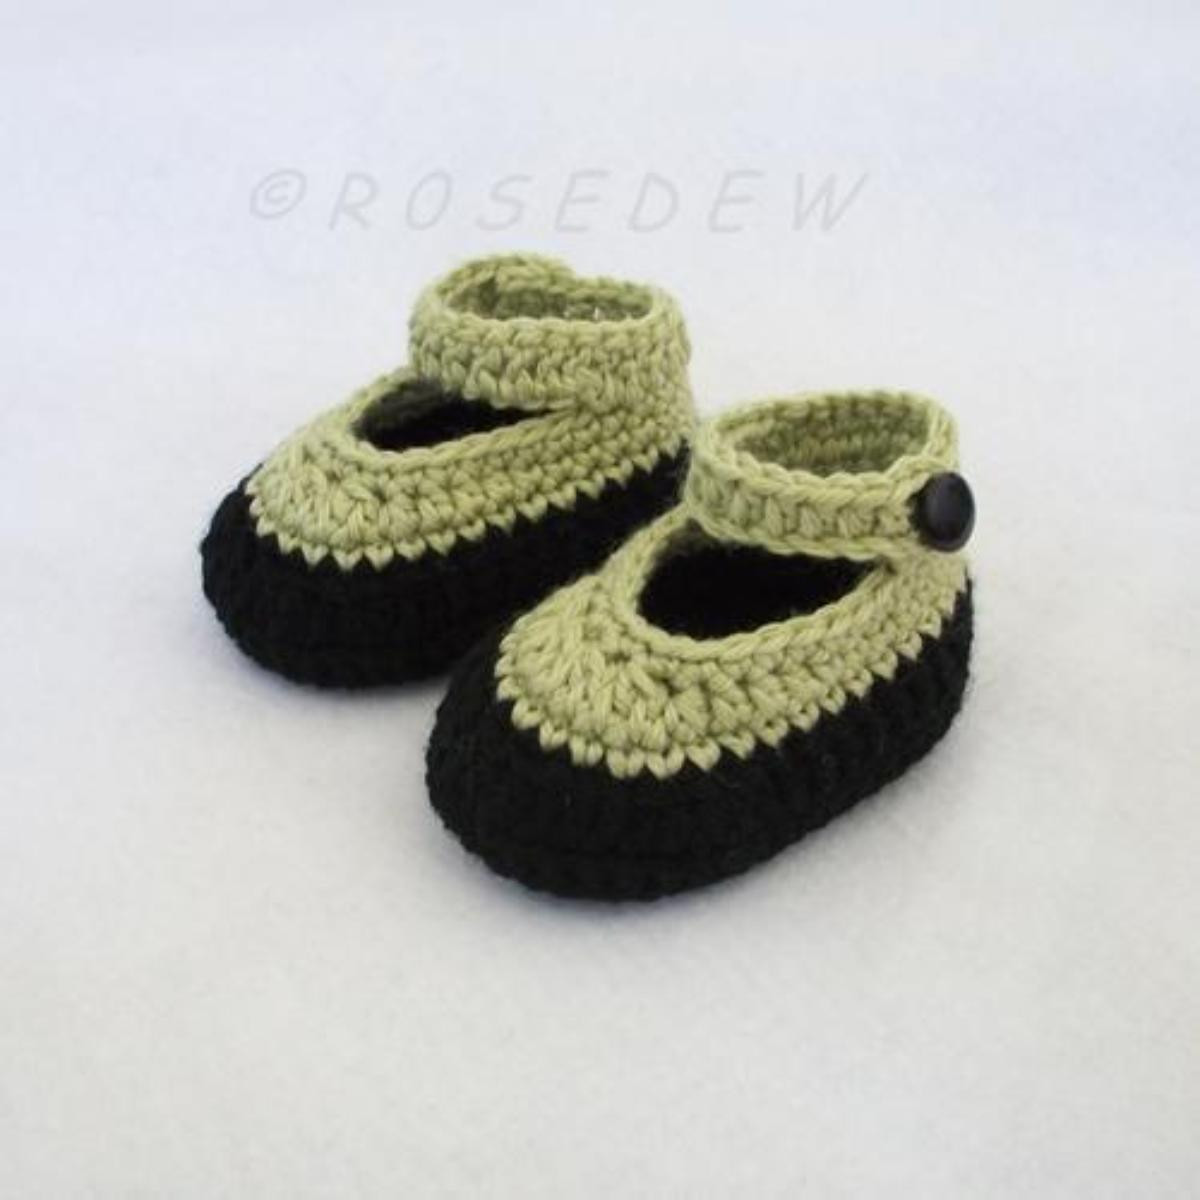 Baby Booties Pattern Inspirational Crochet Baby Booties Patterns for Sweet Little Feet Of Amazing 50 Pics Baby Booties Pattern